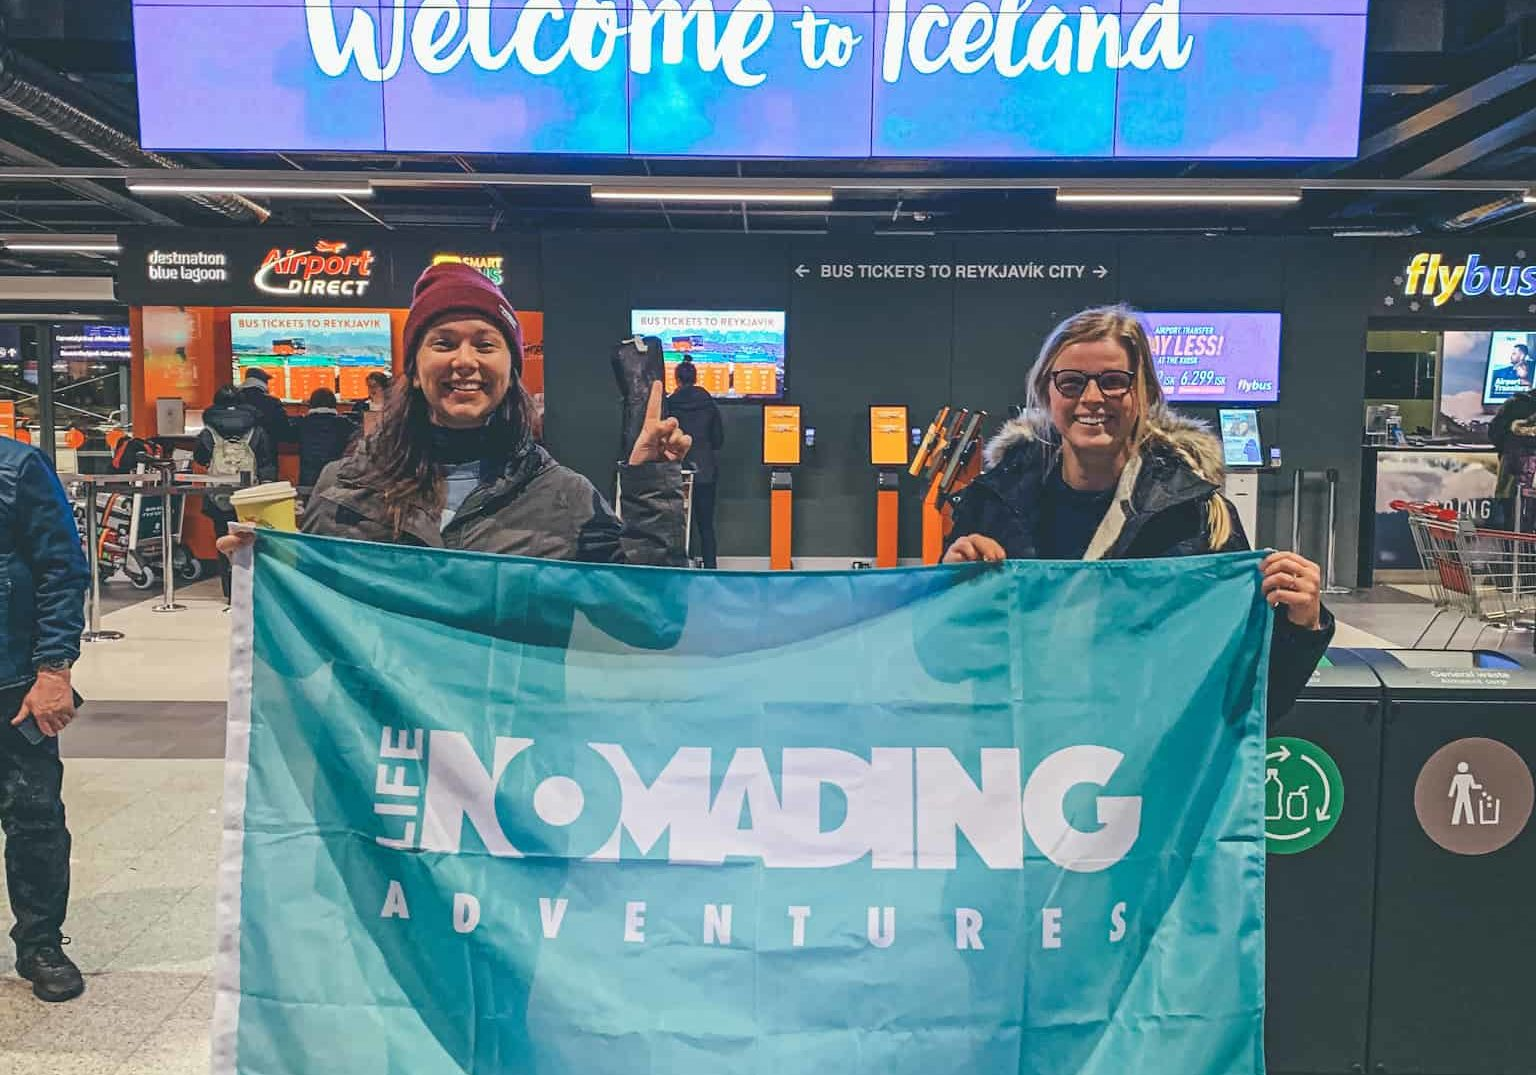 iceland group trip welcome day